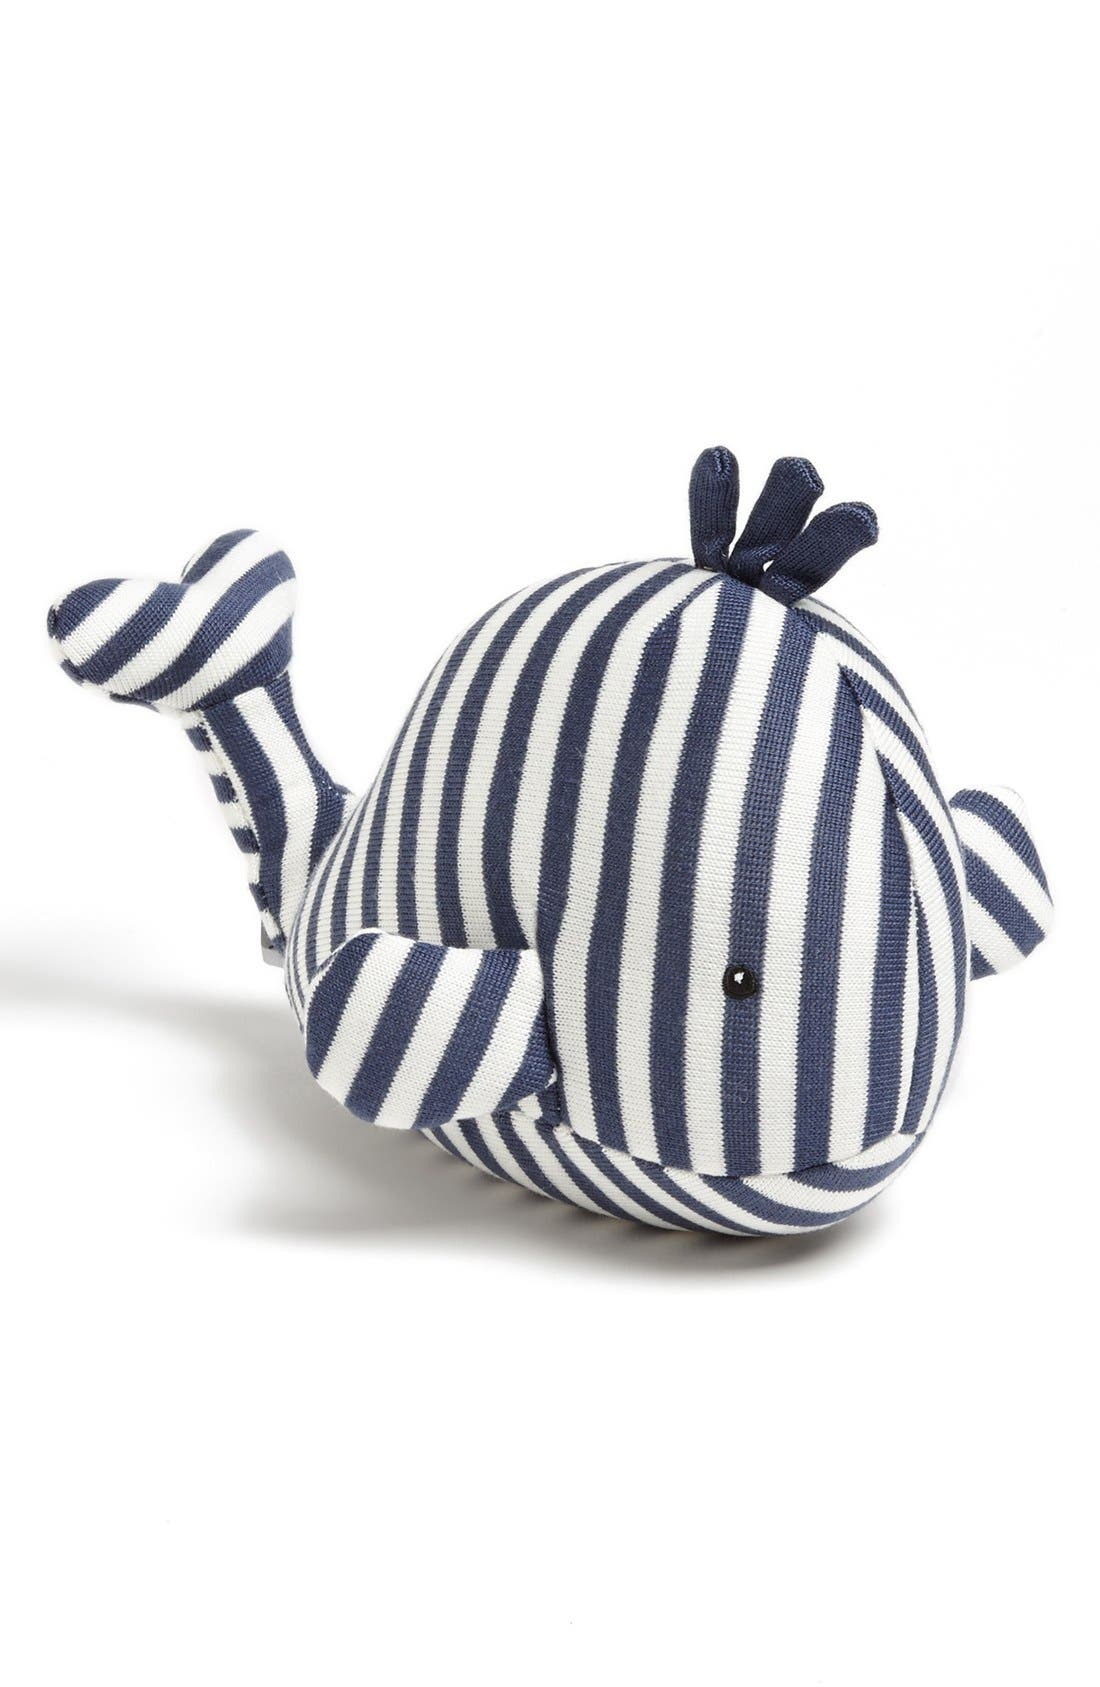 Jellycat 'Walter Whale' Chime Stuffed Animal